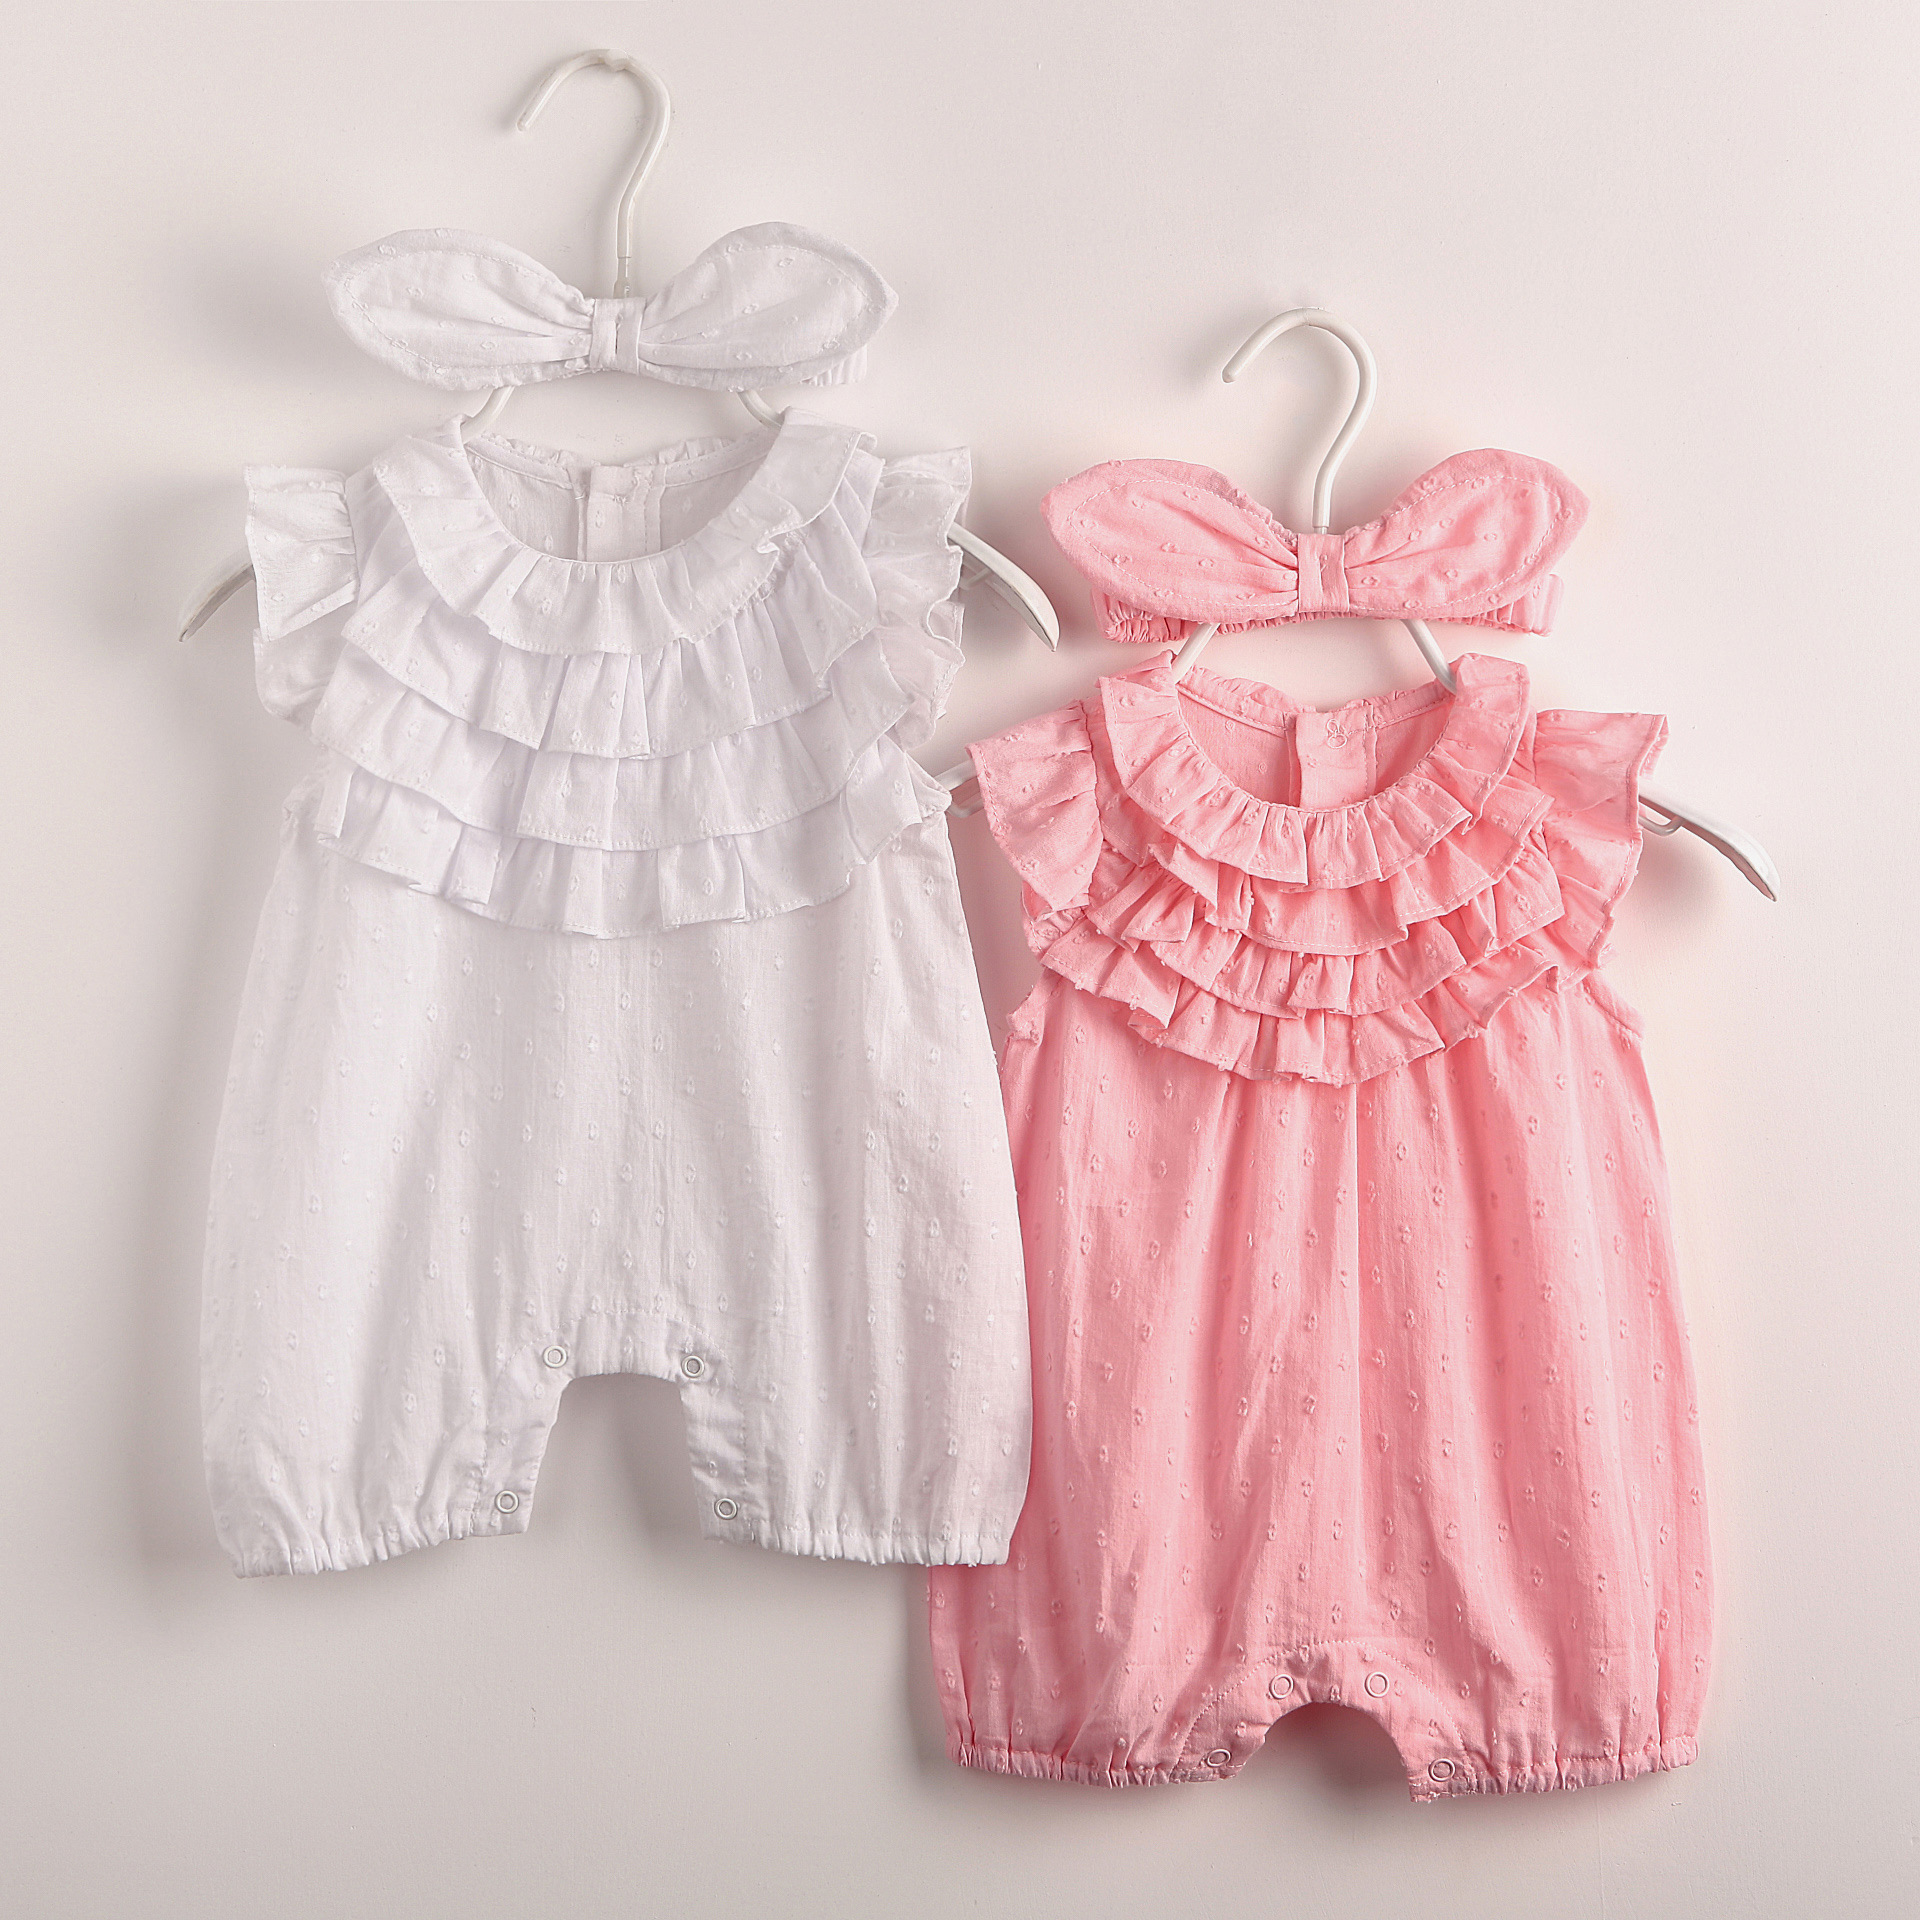 2017 Cute Newborn Baby Girl Rompers Summer Pajamas Sleeveless Ropa